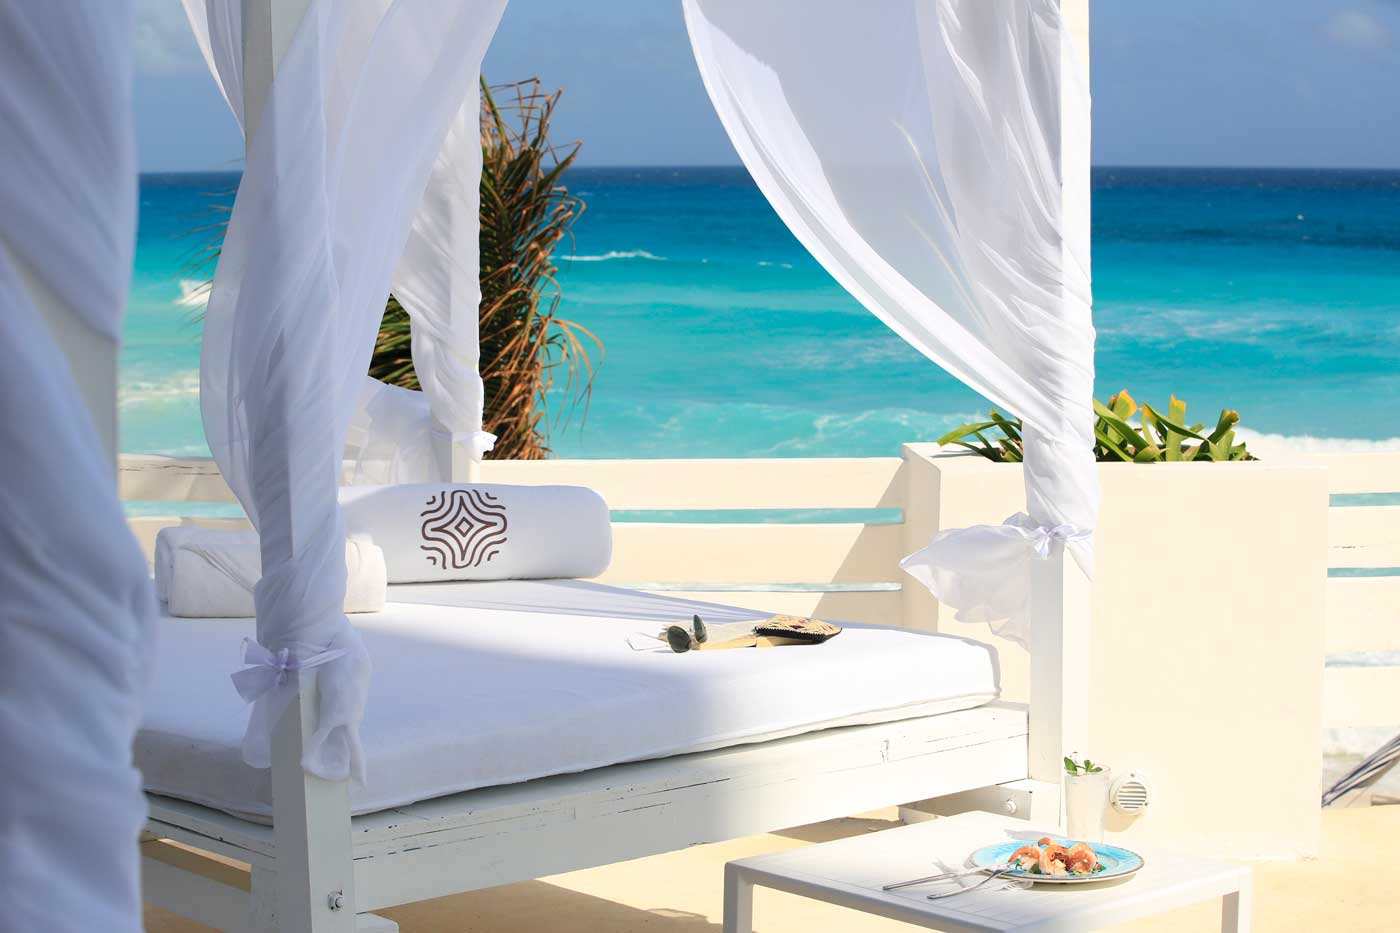 Hotel Oleo - 7 nights on a shared room basis in a luxury 4* beachfront hotel.